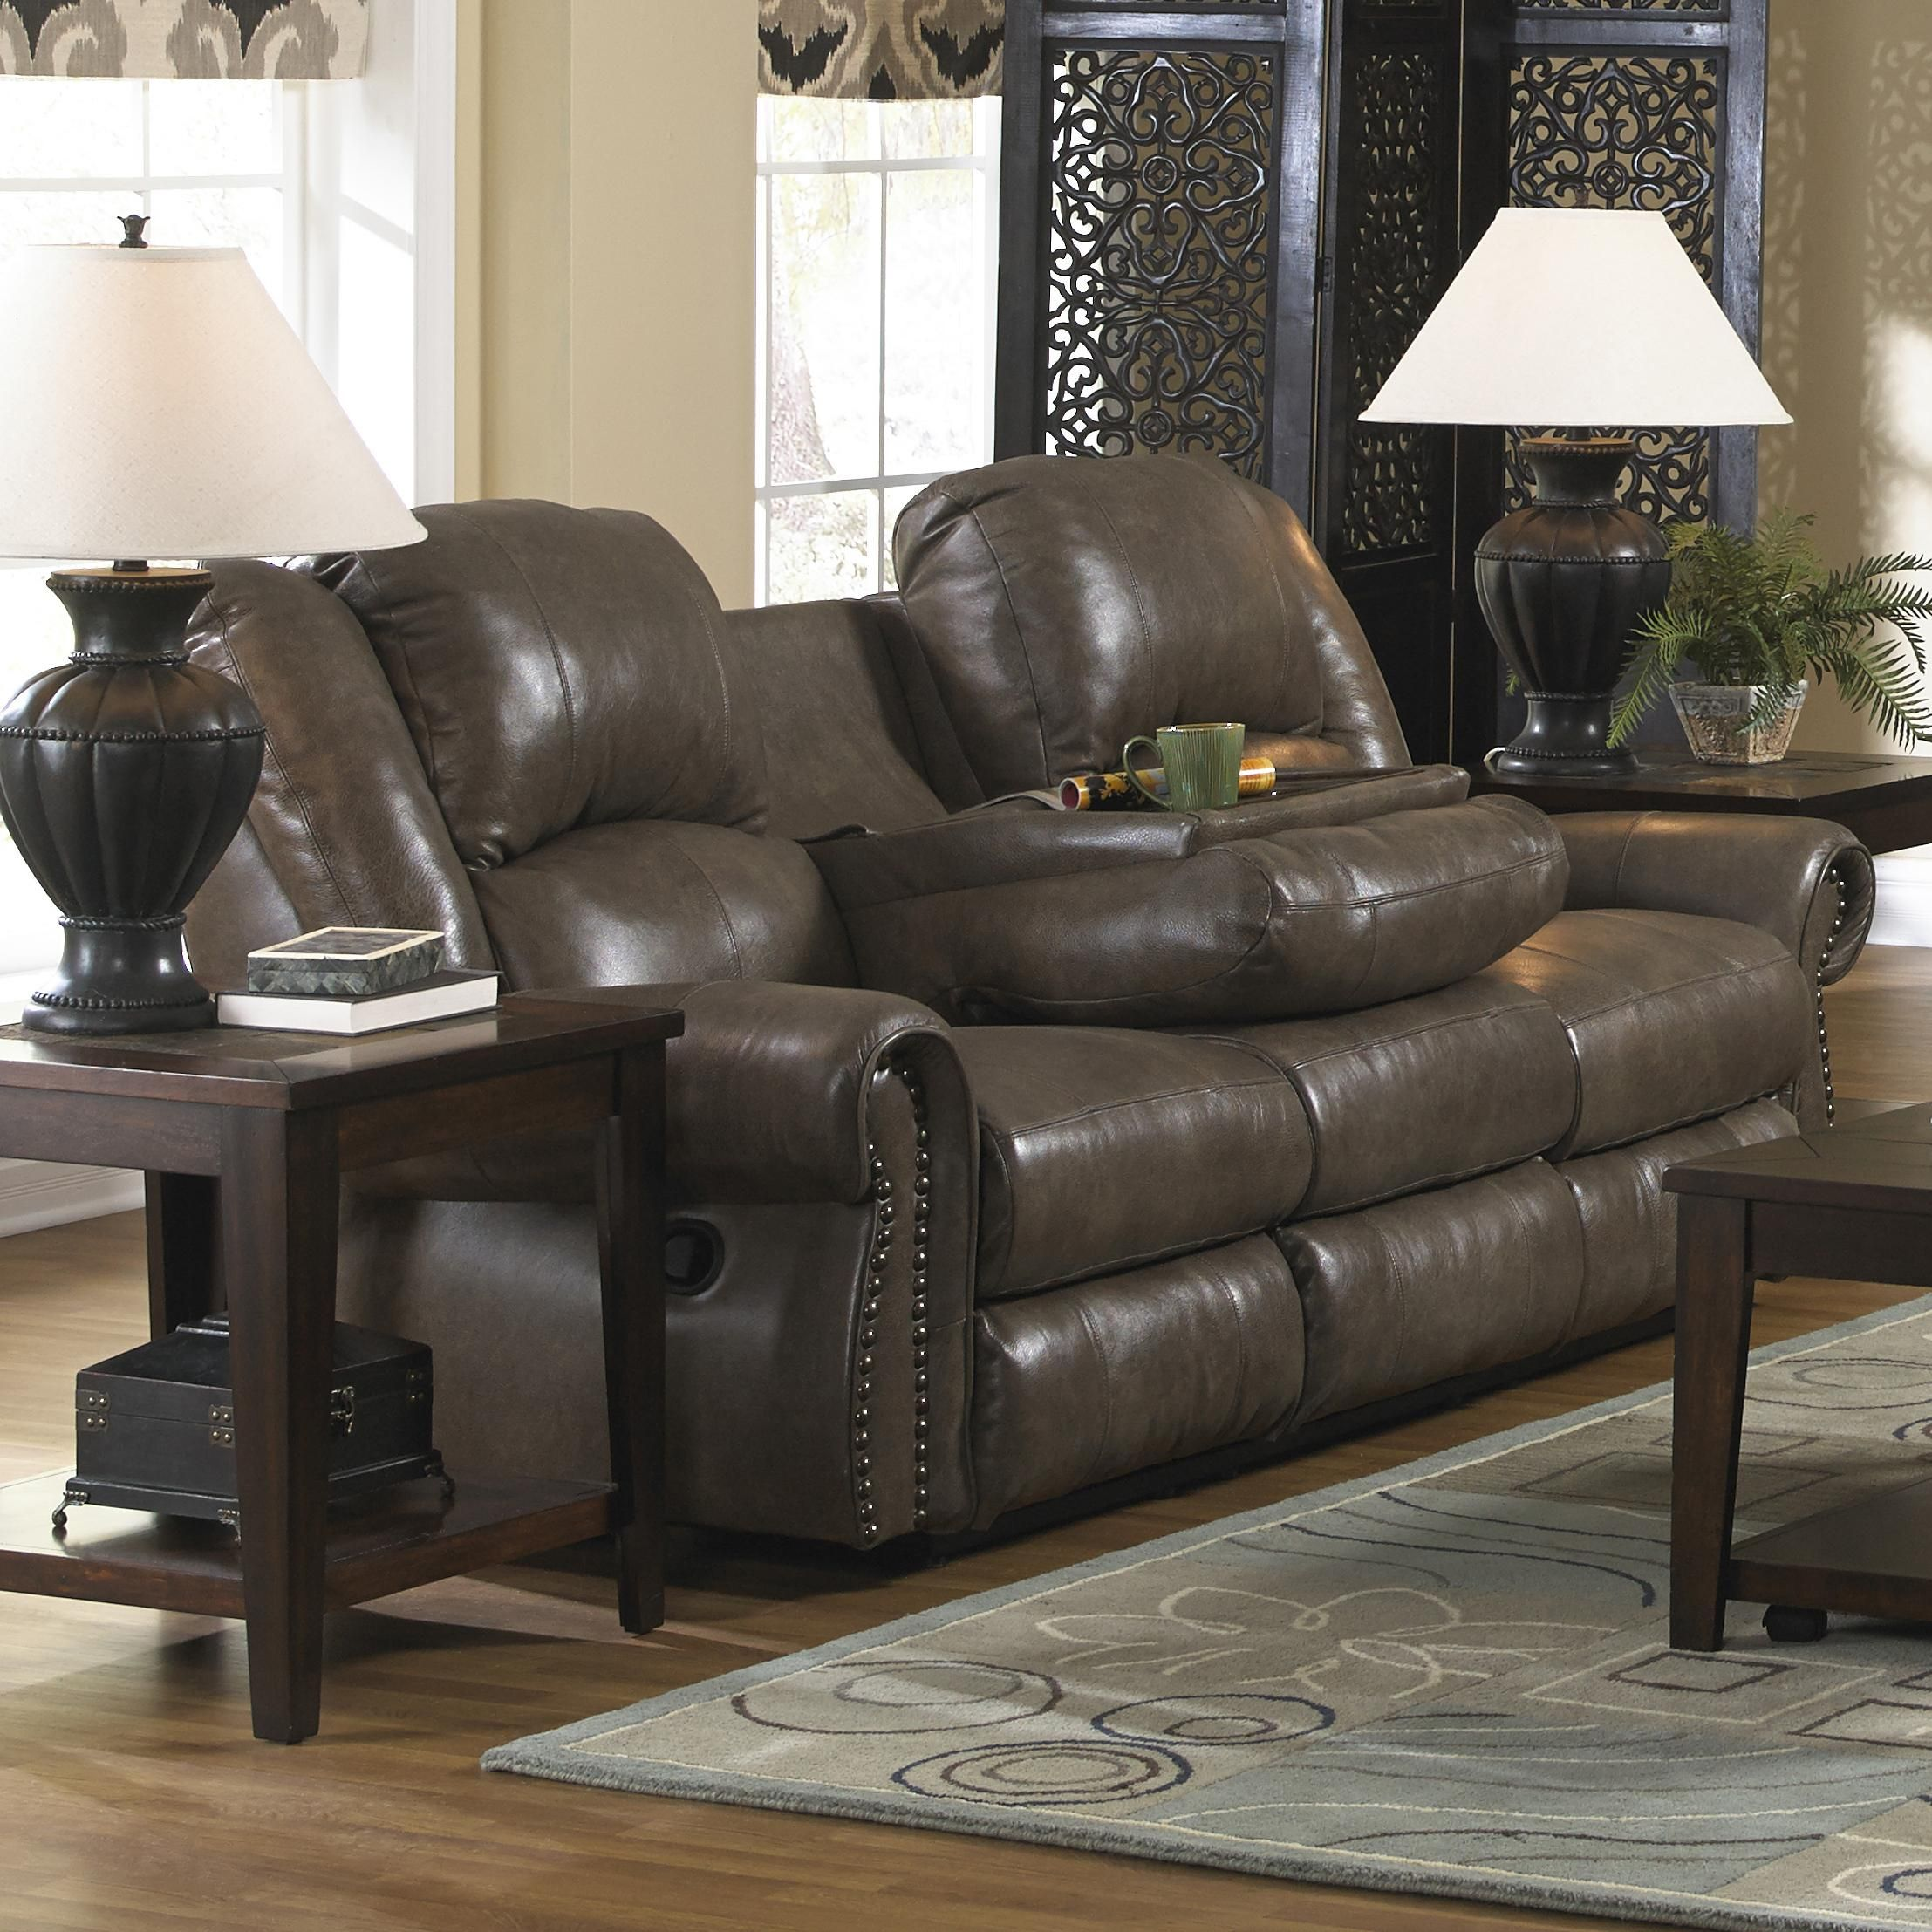 Livingston Power Reclining Sofa With Drop Down Table By Catnapper